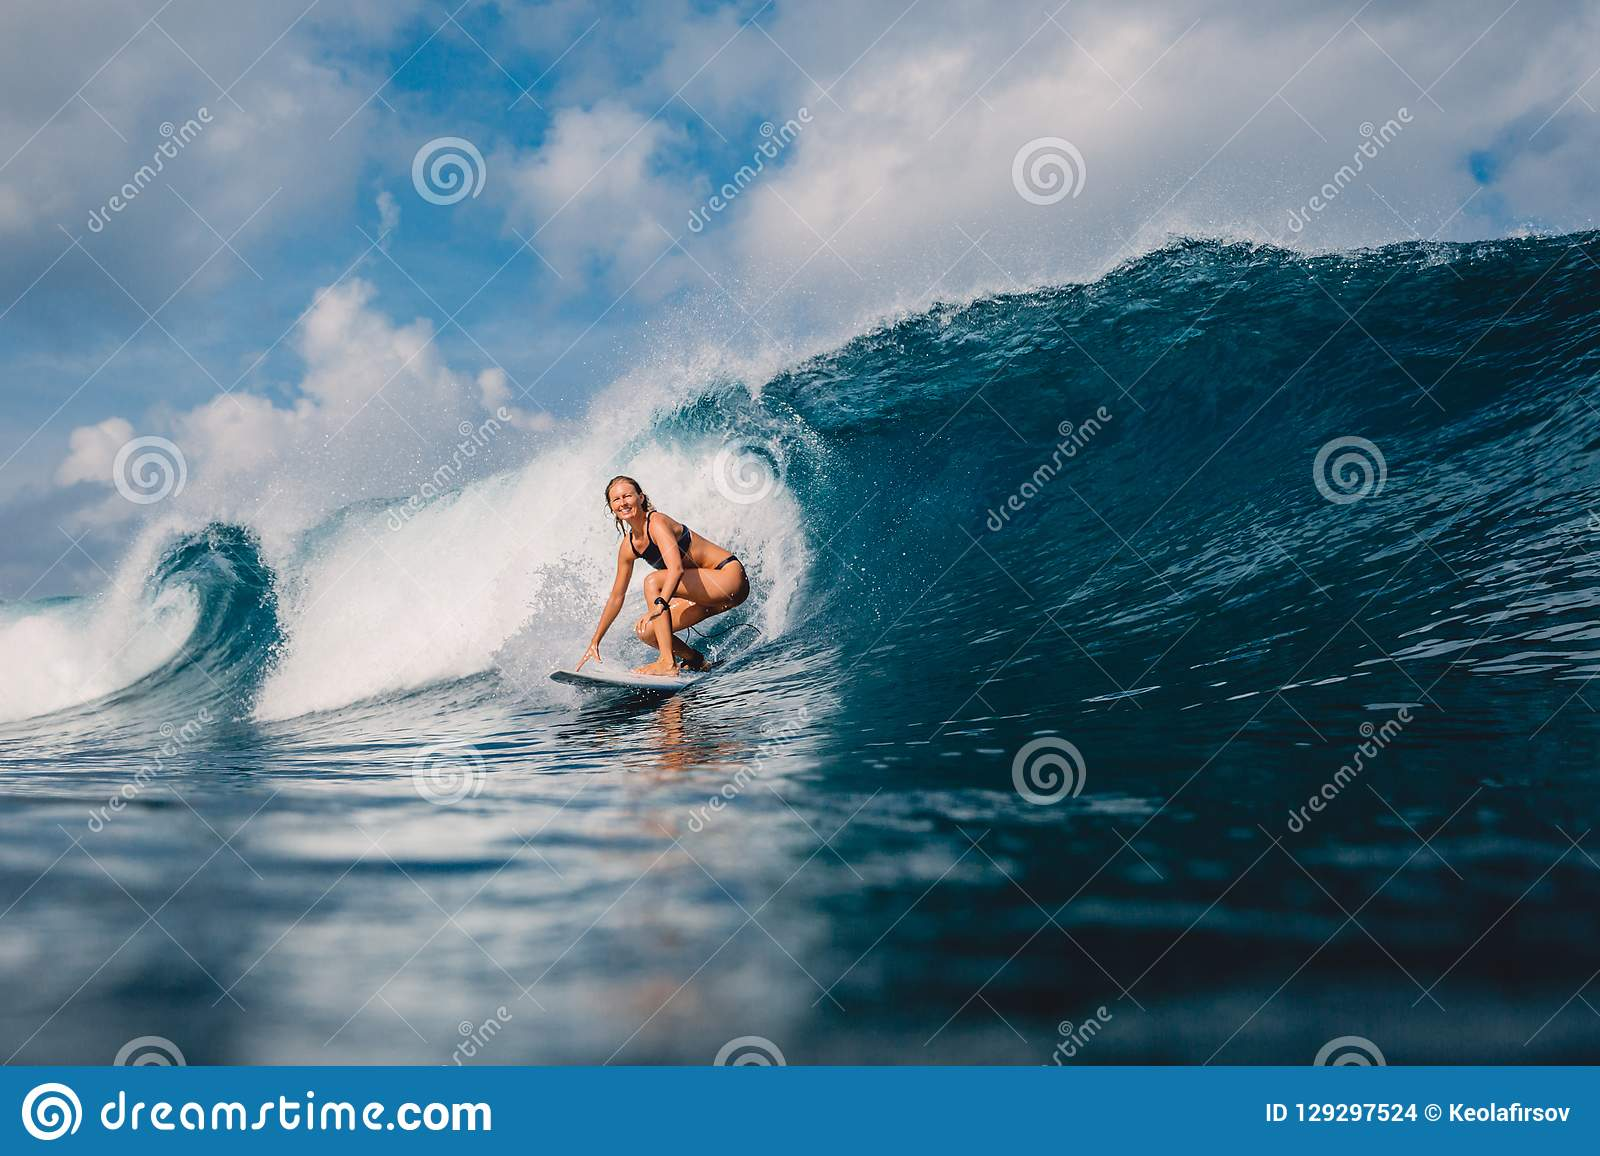 Surf girl at surfboard on barrel wave. Woman in ocean during surfing